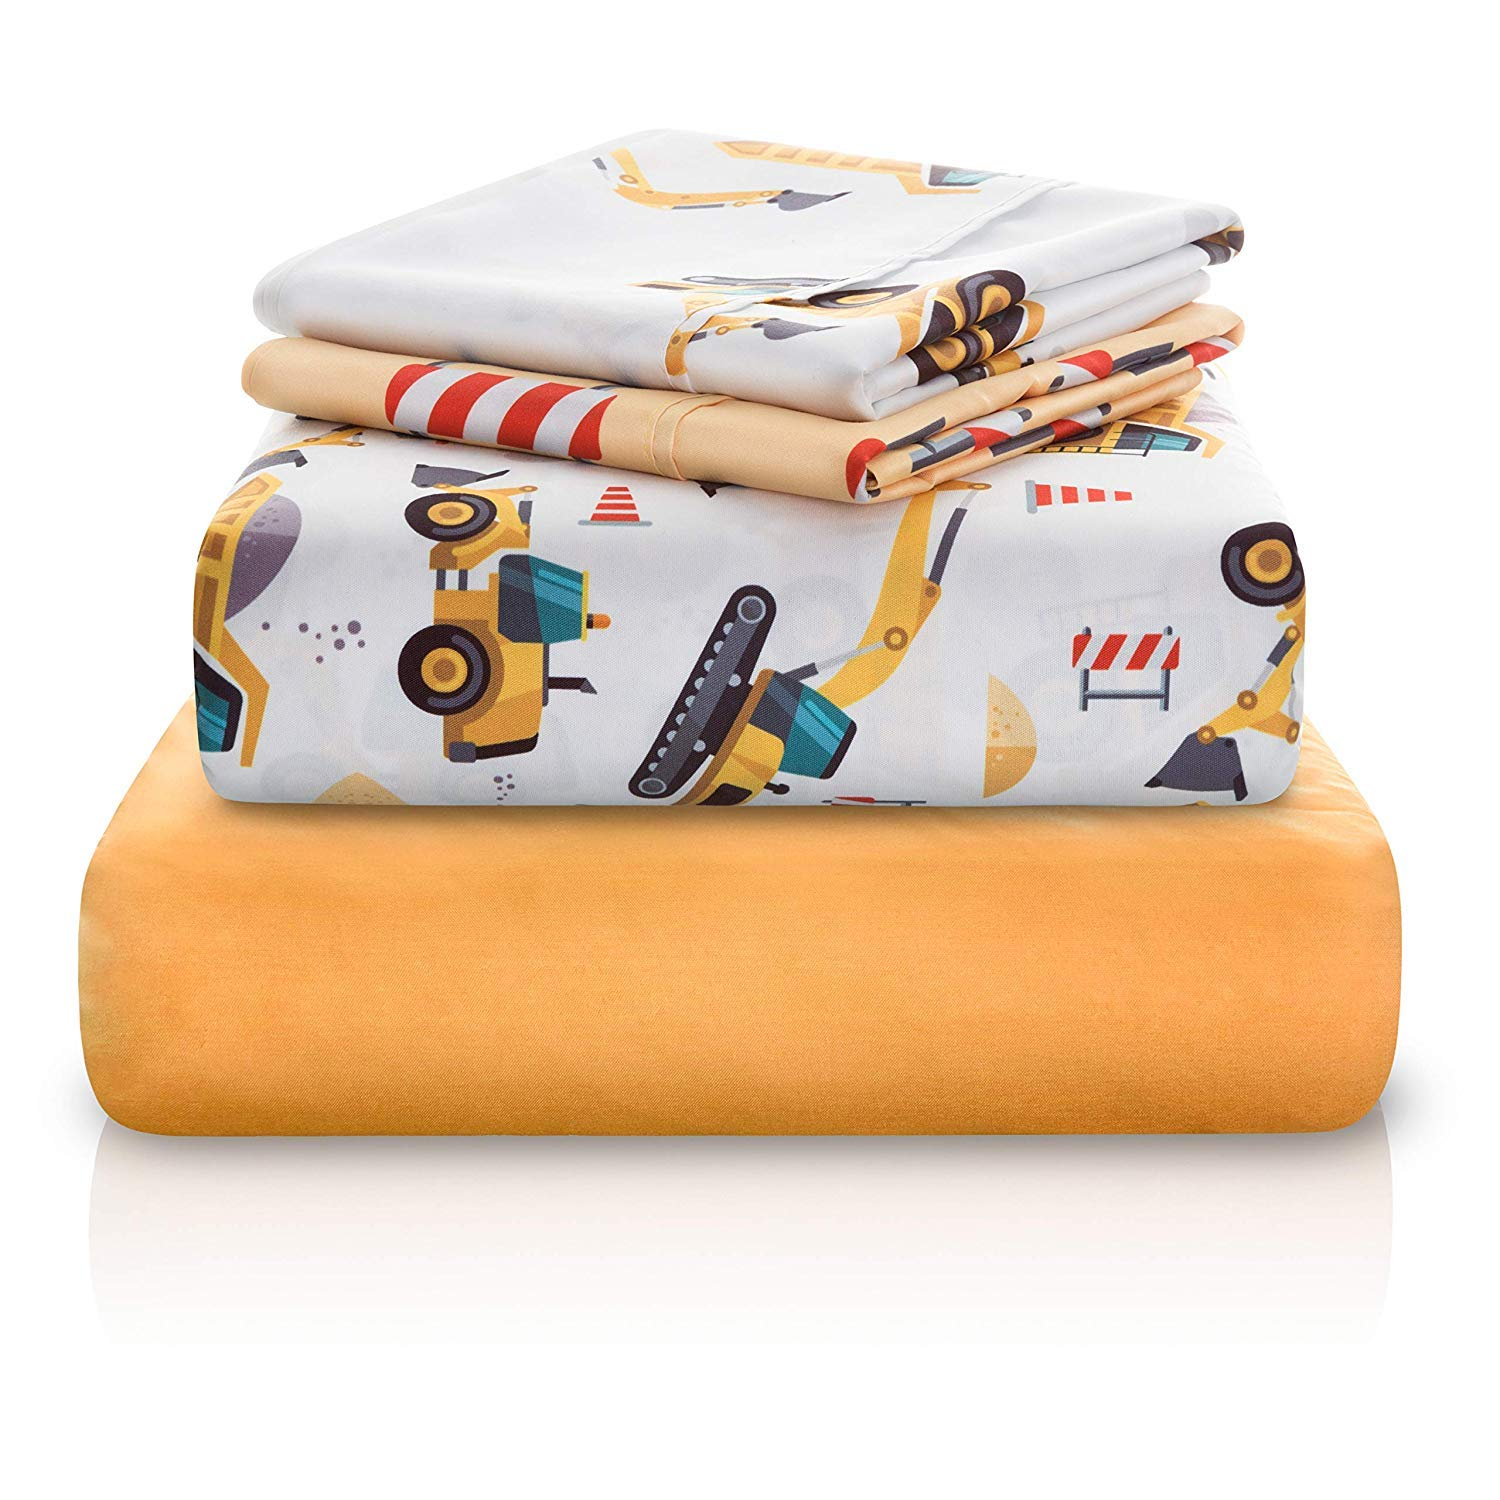 Chital Twin Bed Sheets for Boys | 4 Pc Kids Bedding Set | Construction & Tractor Print | Durable Super-Soft, Double-Brushed Microfiber | 1 Flat & 1 Fitted Sheet, 2 Pillow Cases | 15'' Deep by Chital